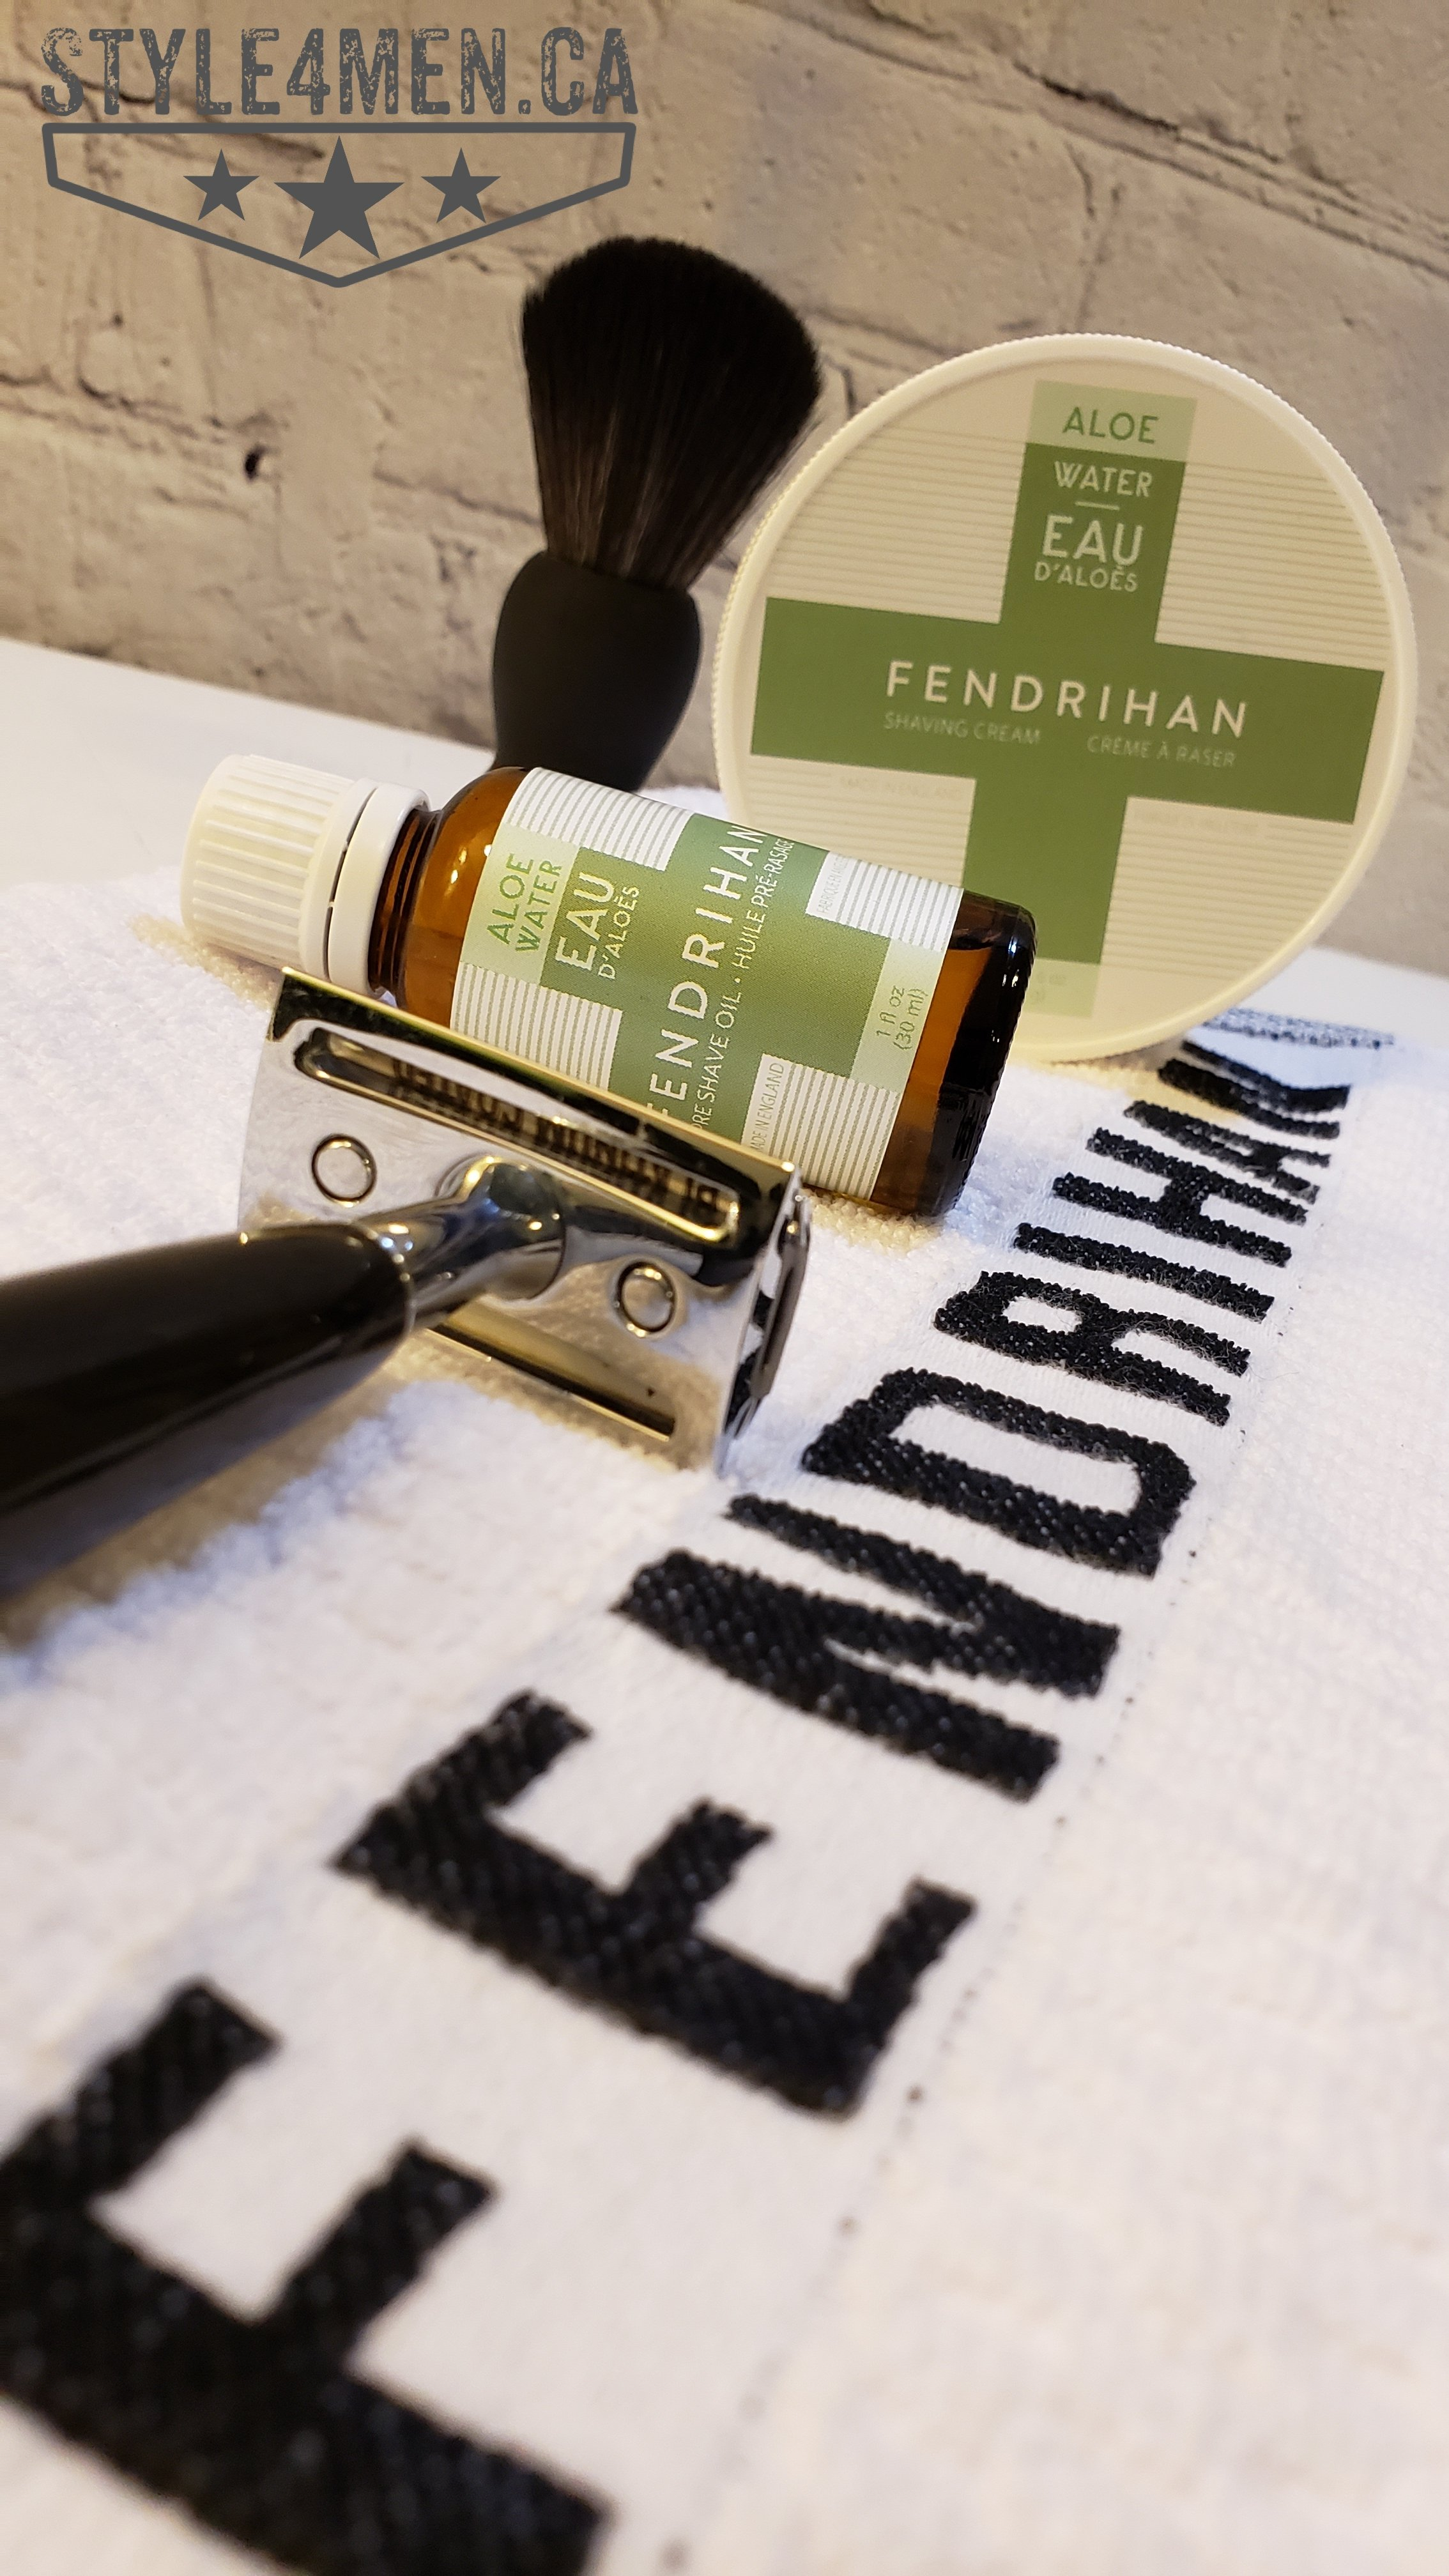 Shaving with FENDRIHAN's Aloe Water shave oil and shave cream